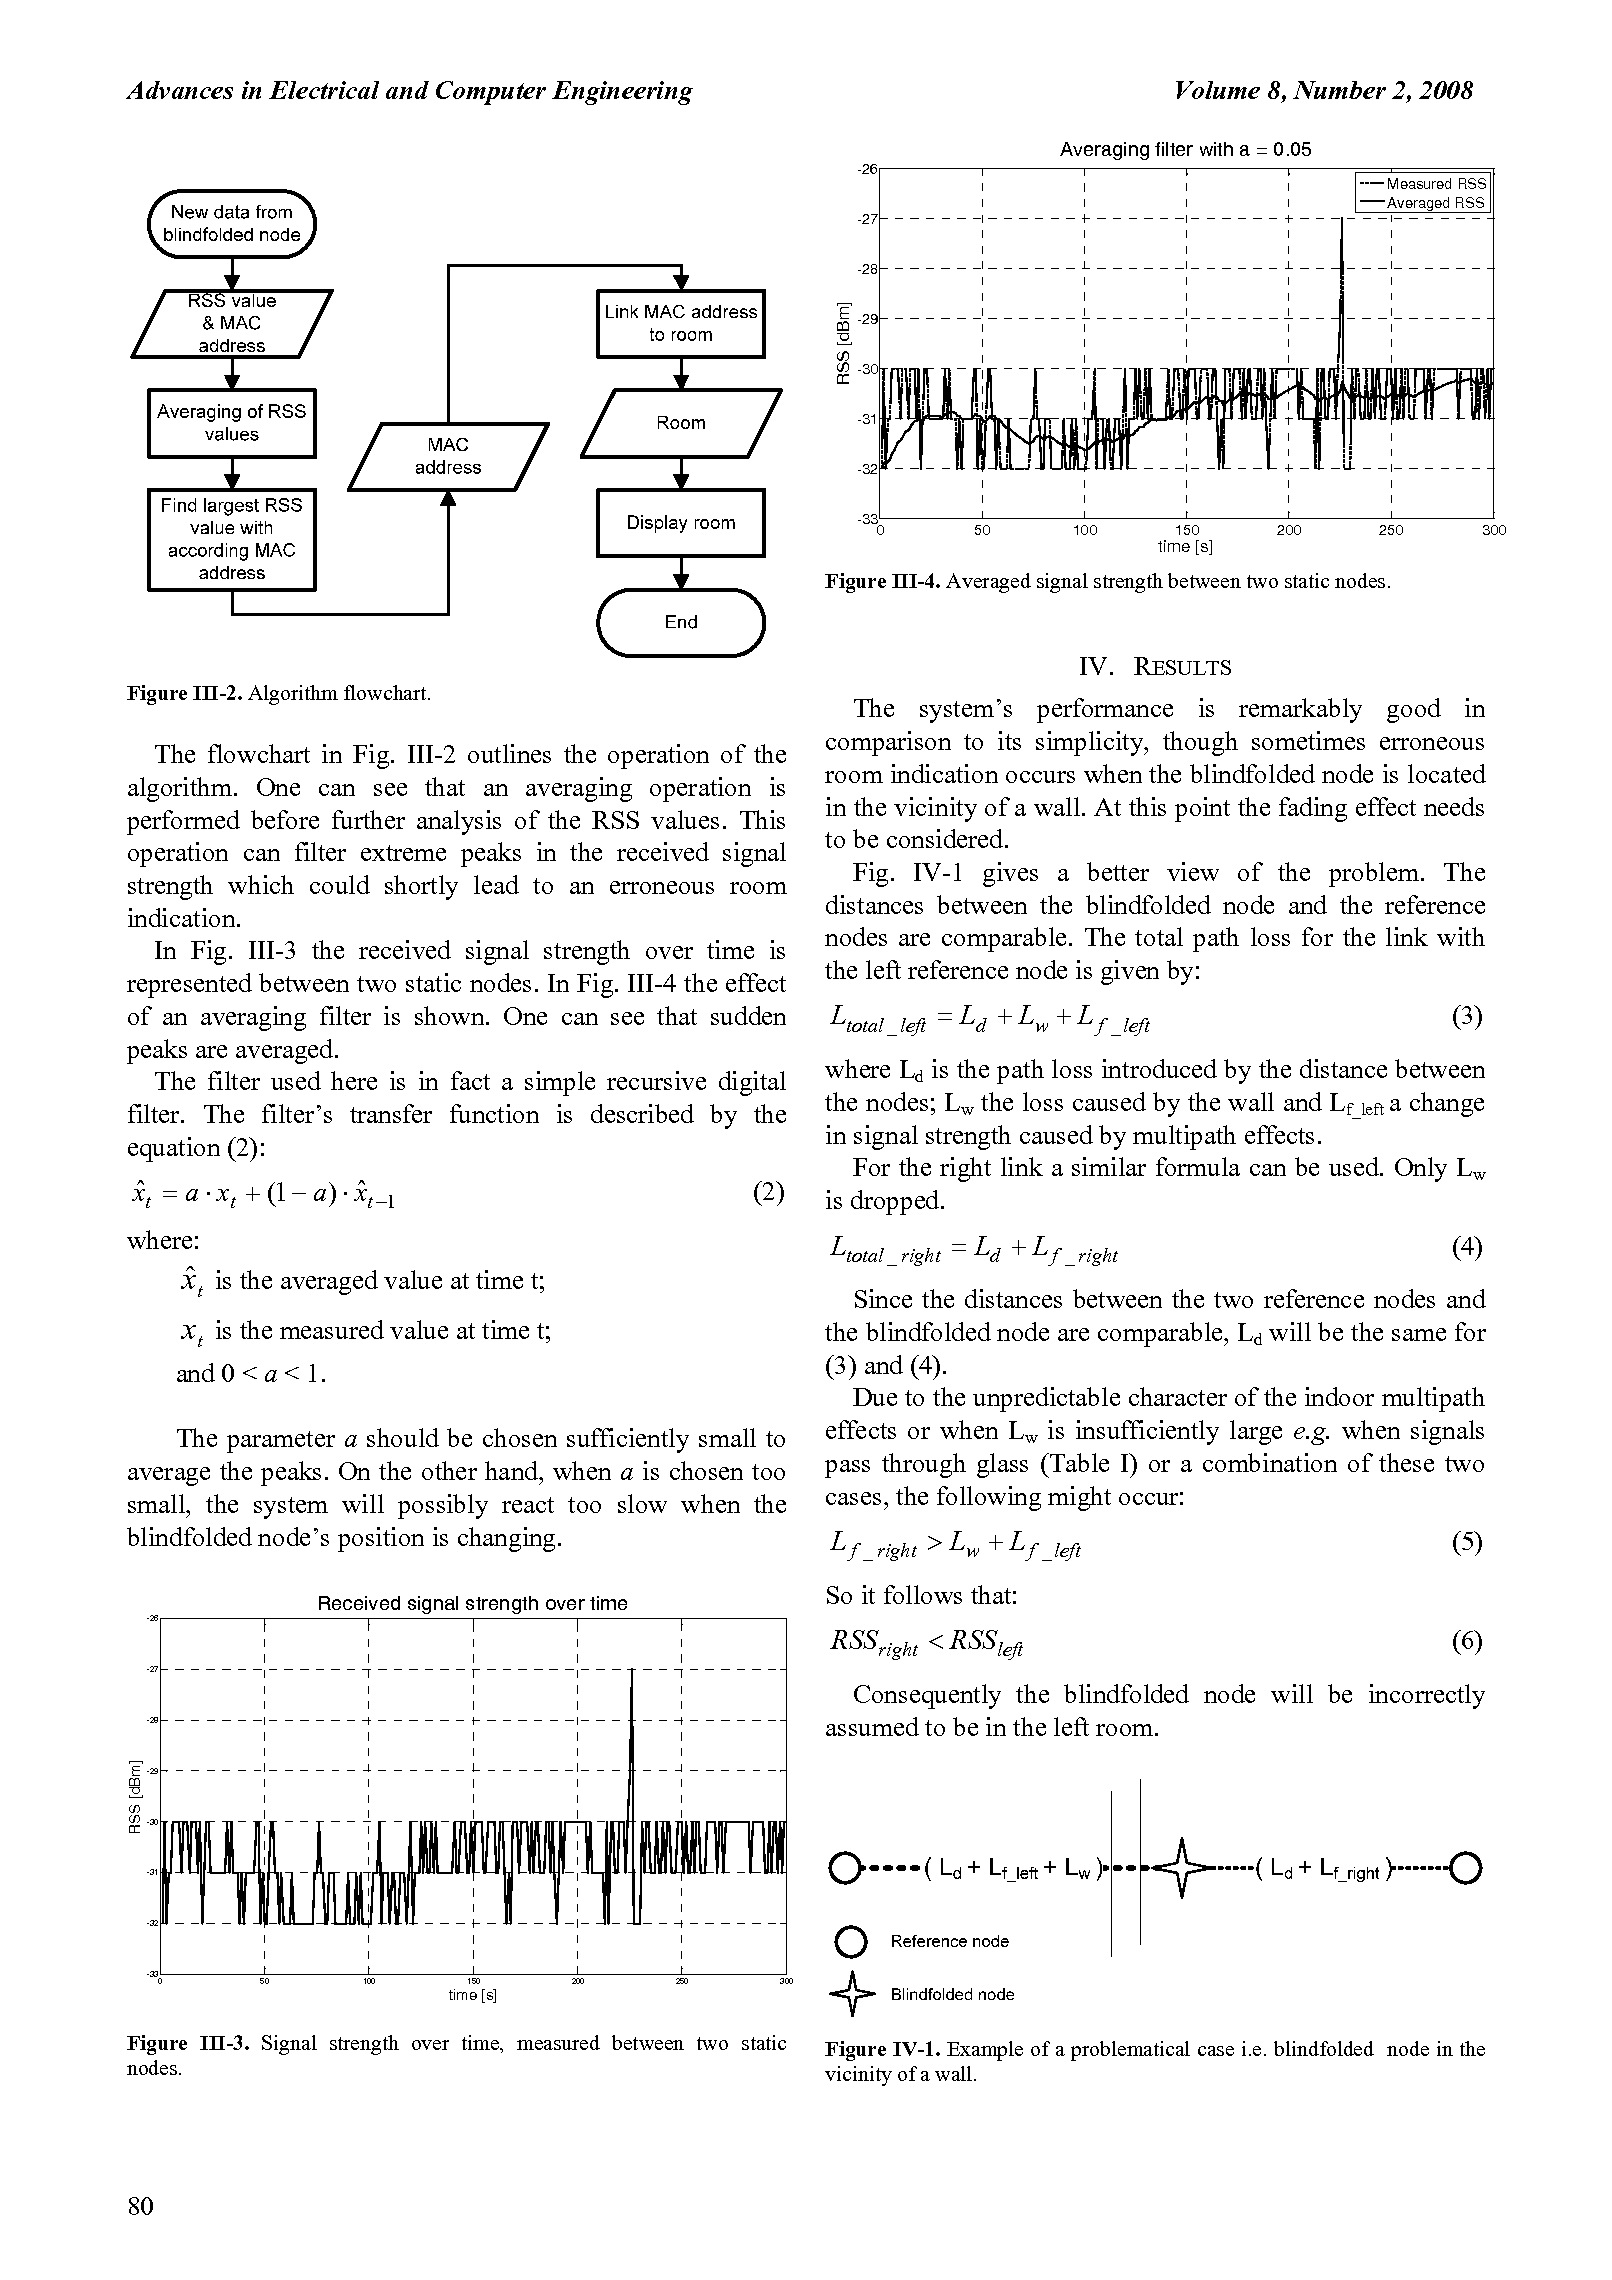 PDF Quickview for paper with DOI:10.4316/AECE.2008.02014